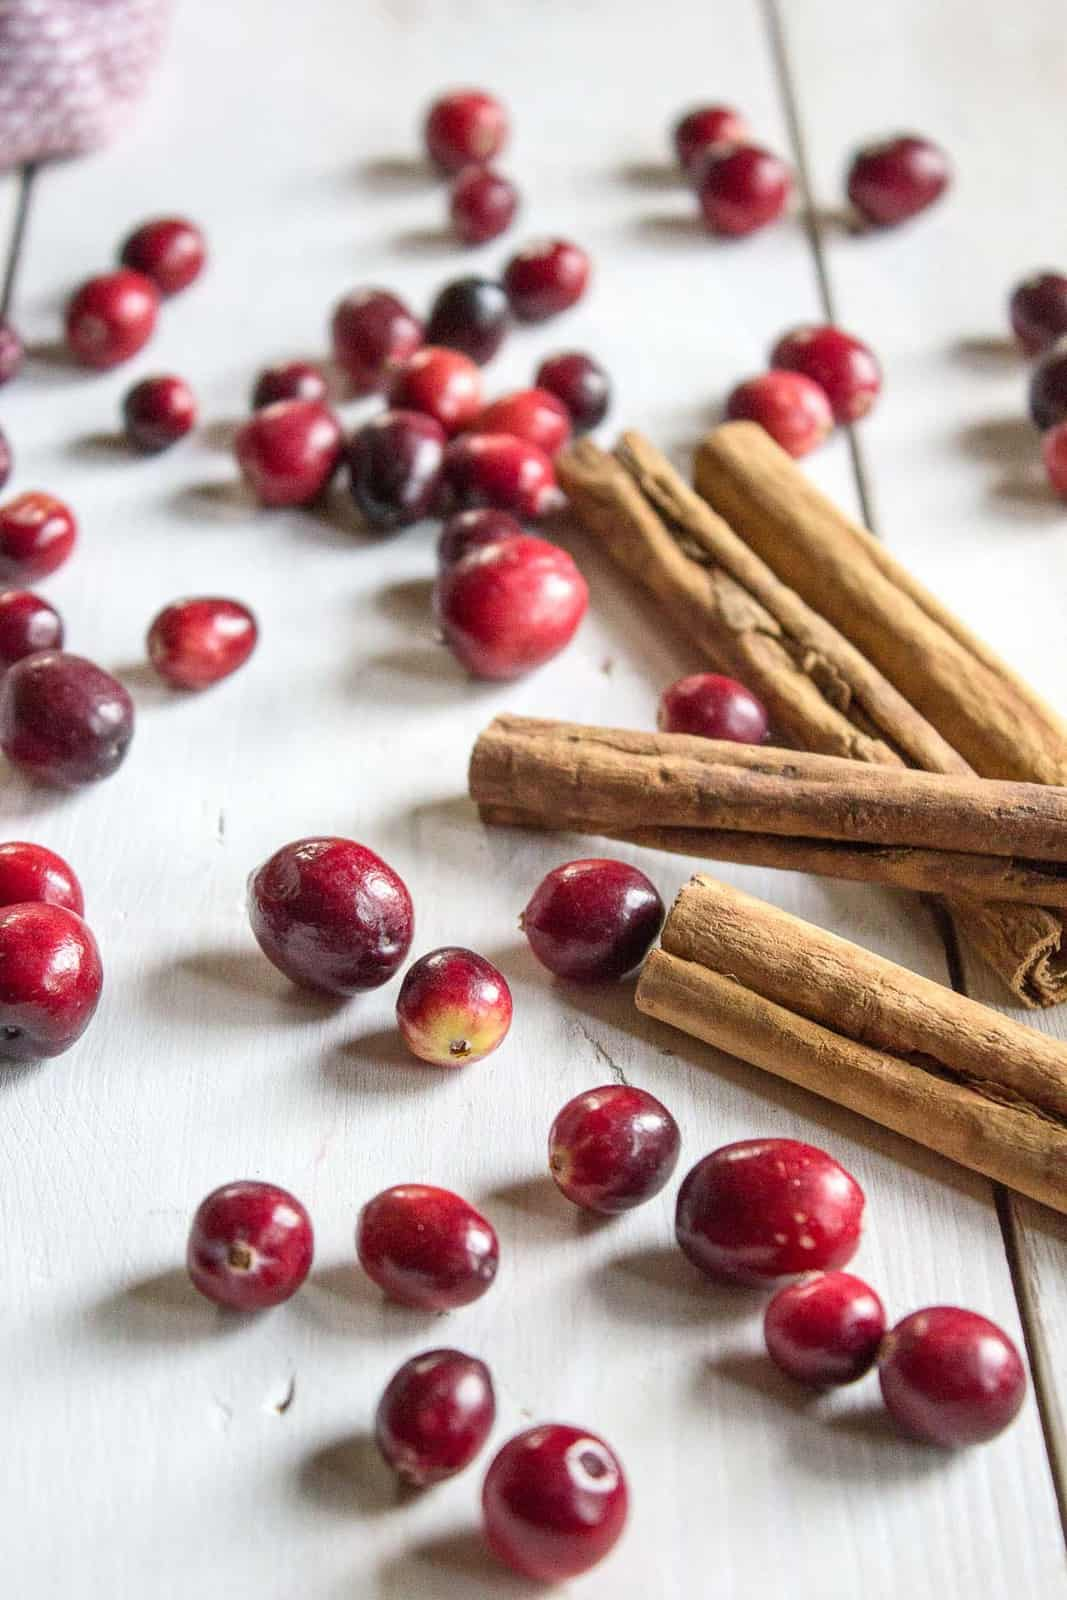 Fresh cranberries and cinnamon sticks scattered on a white board.